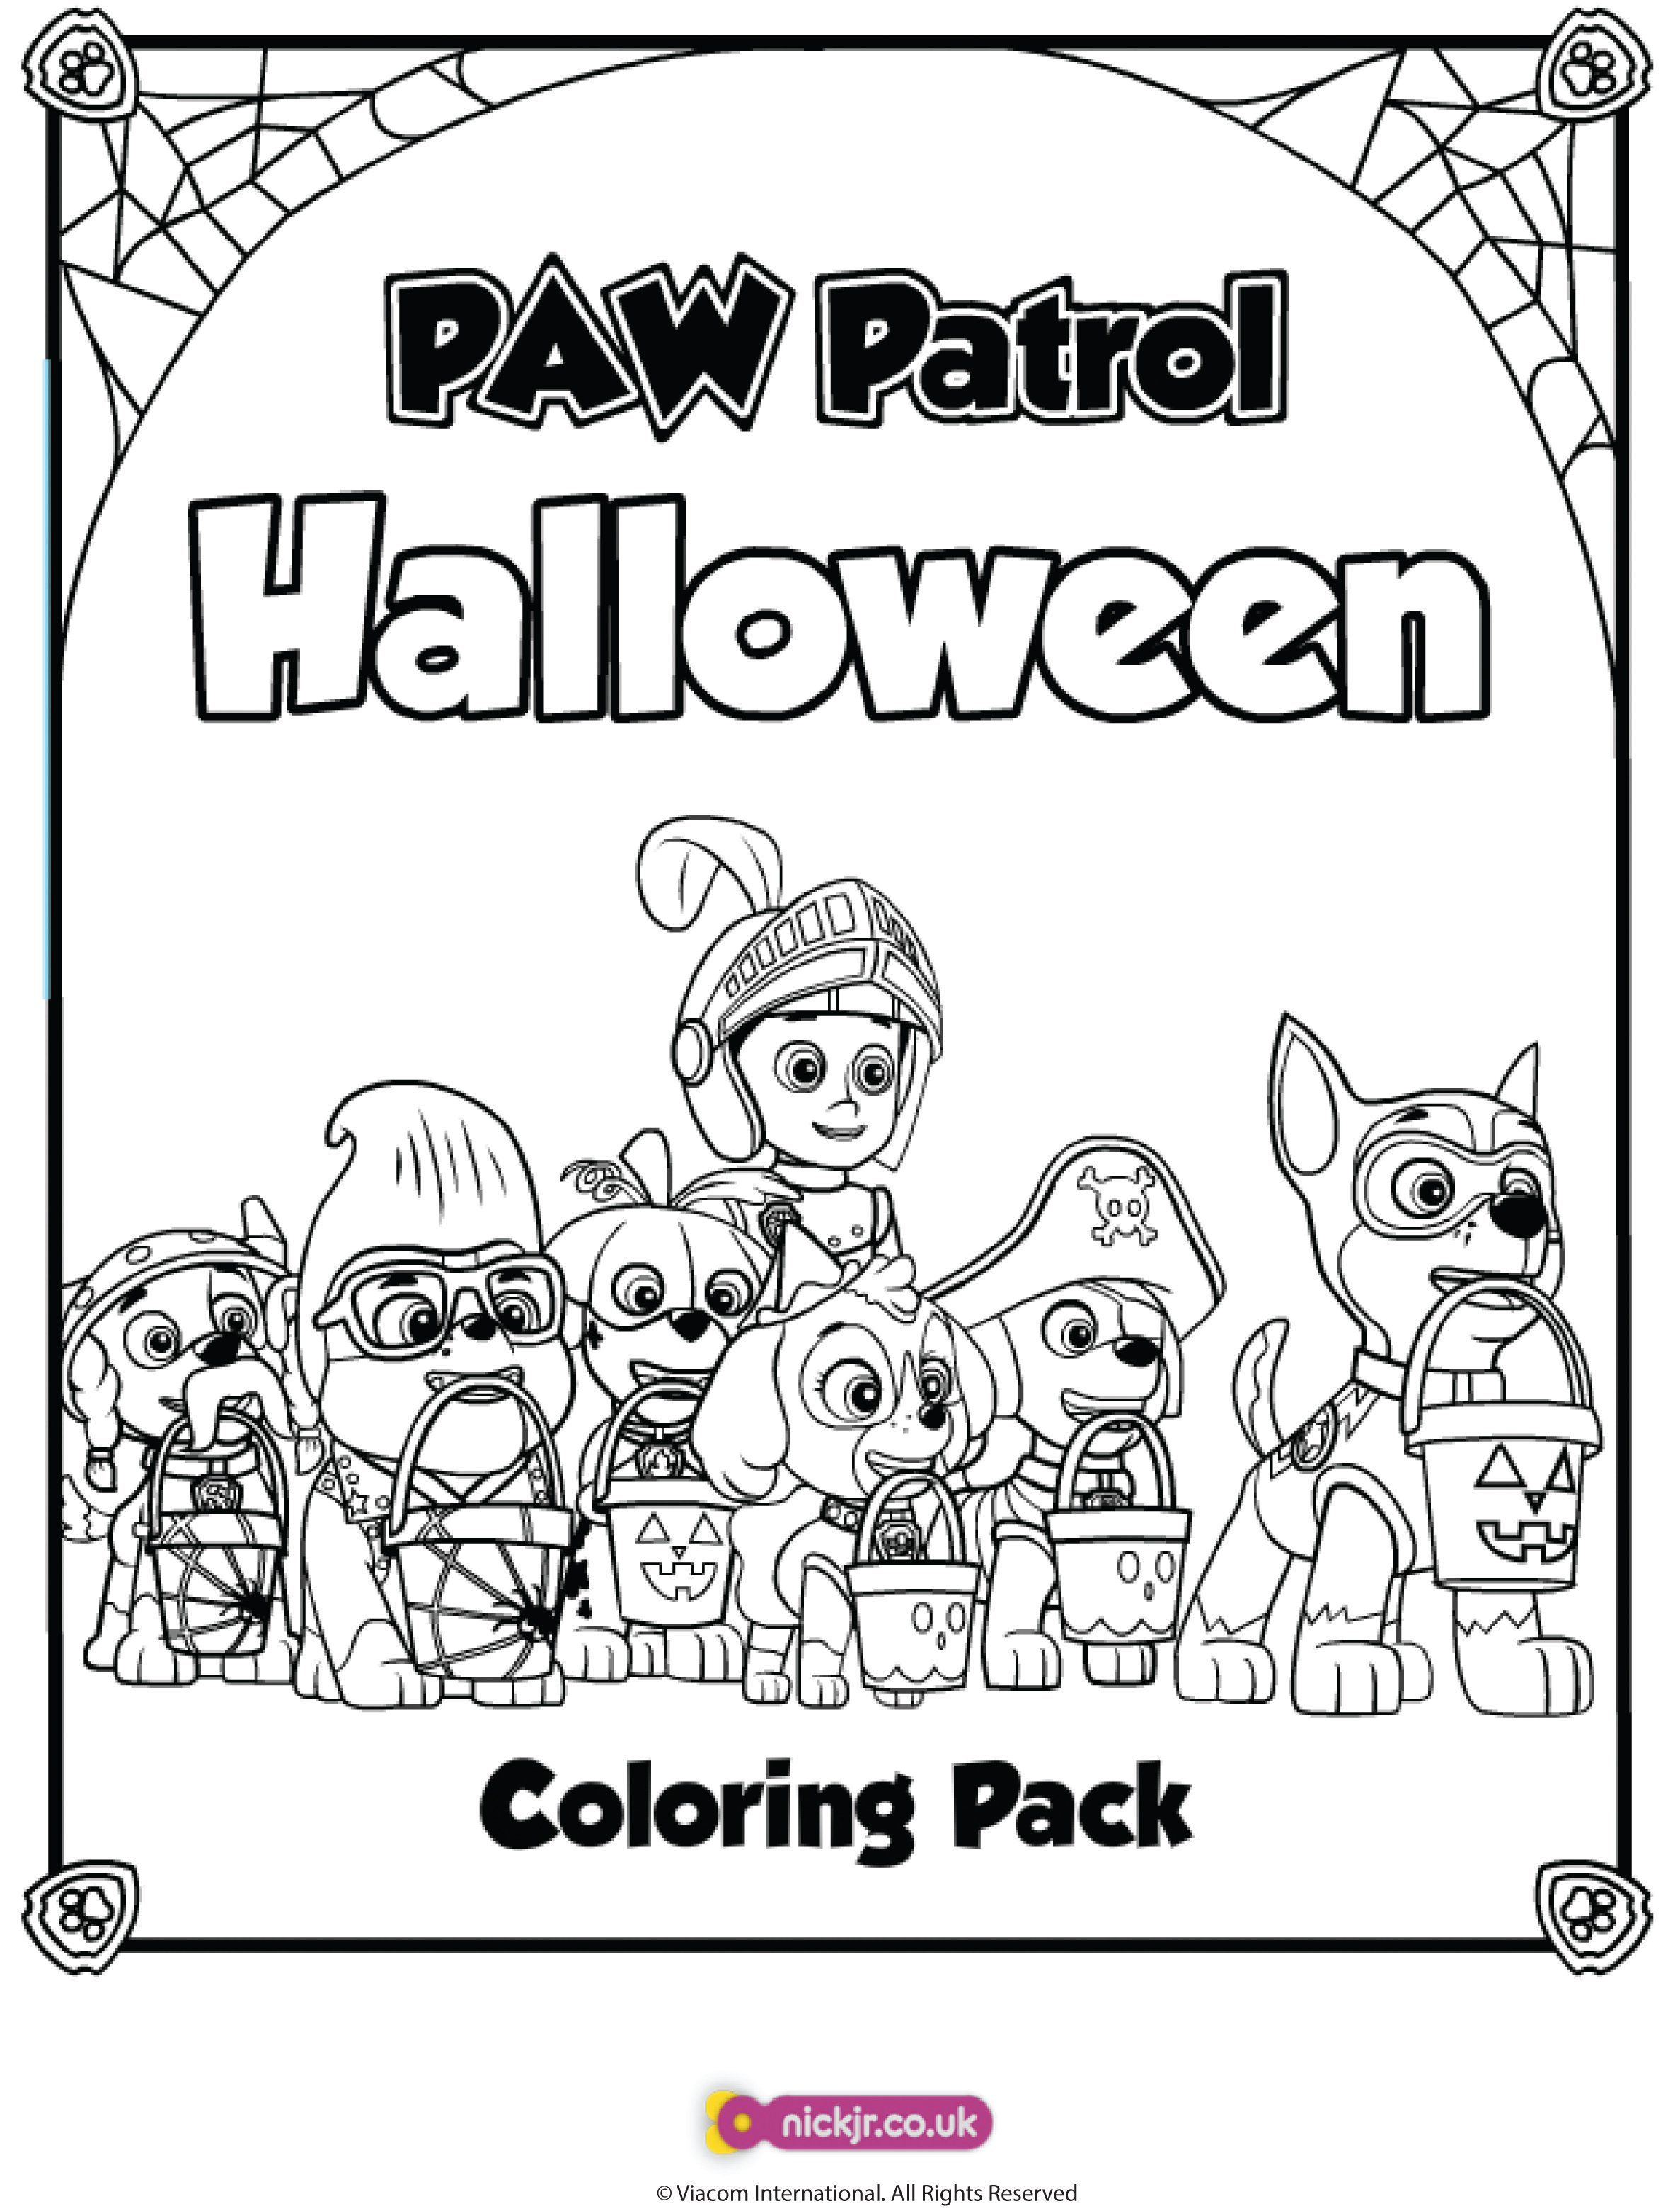 paw patrol halloween coloring pages PAW Patrol Halloween Coloring Pages | Paw Patrol | Pinterest  paw patrol halloween coloring pages